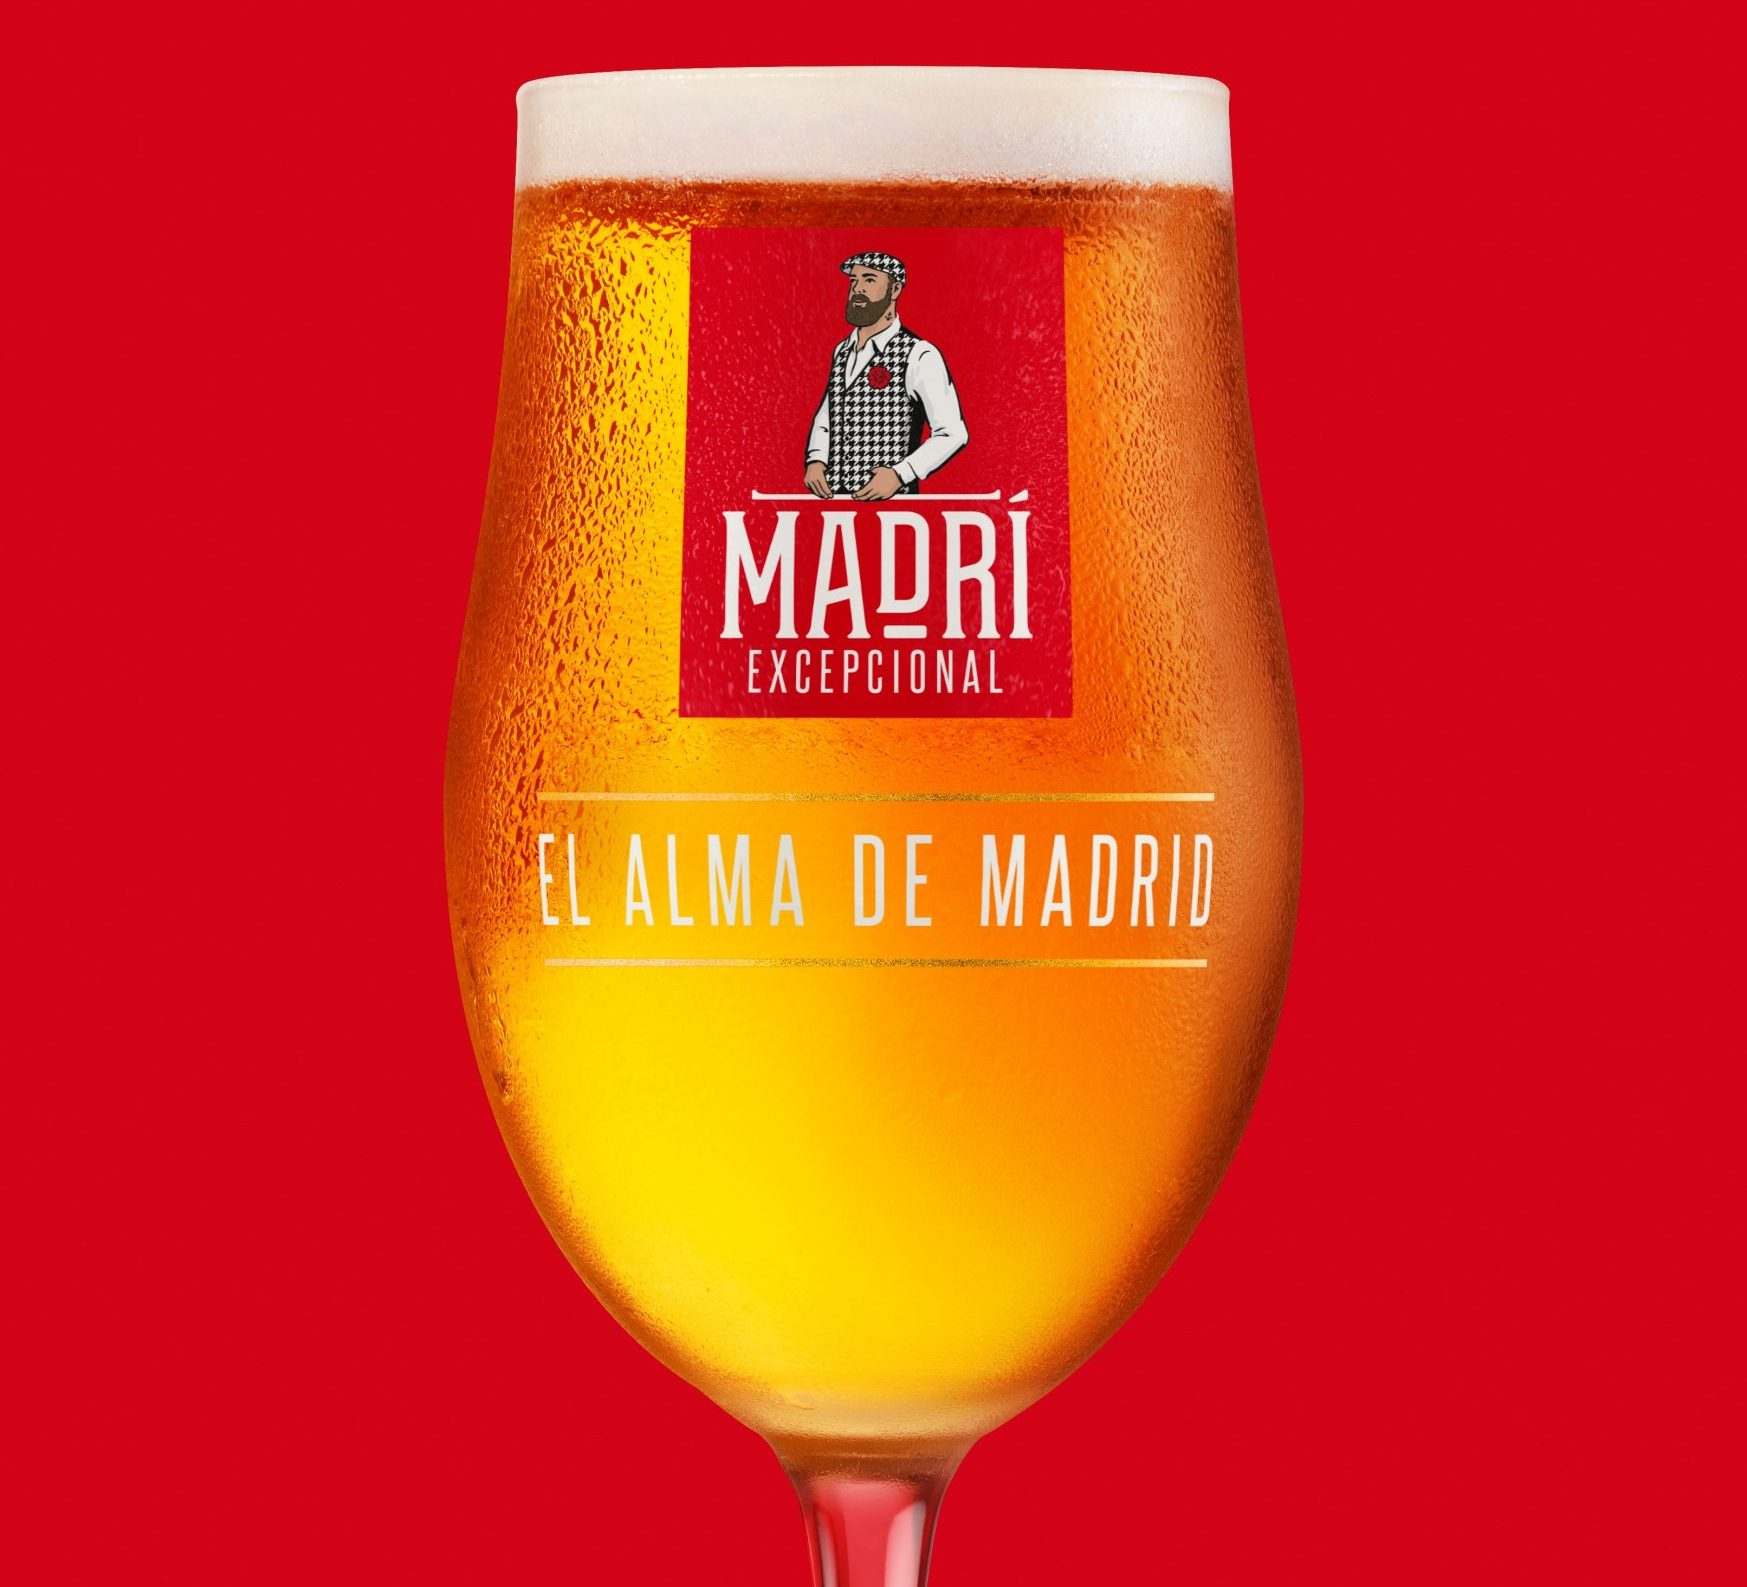 Madri-Excepcional-Pint-on-Red